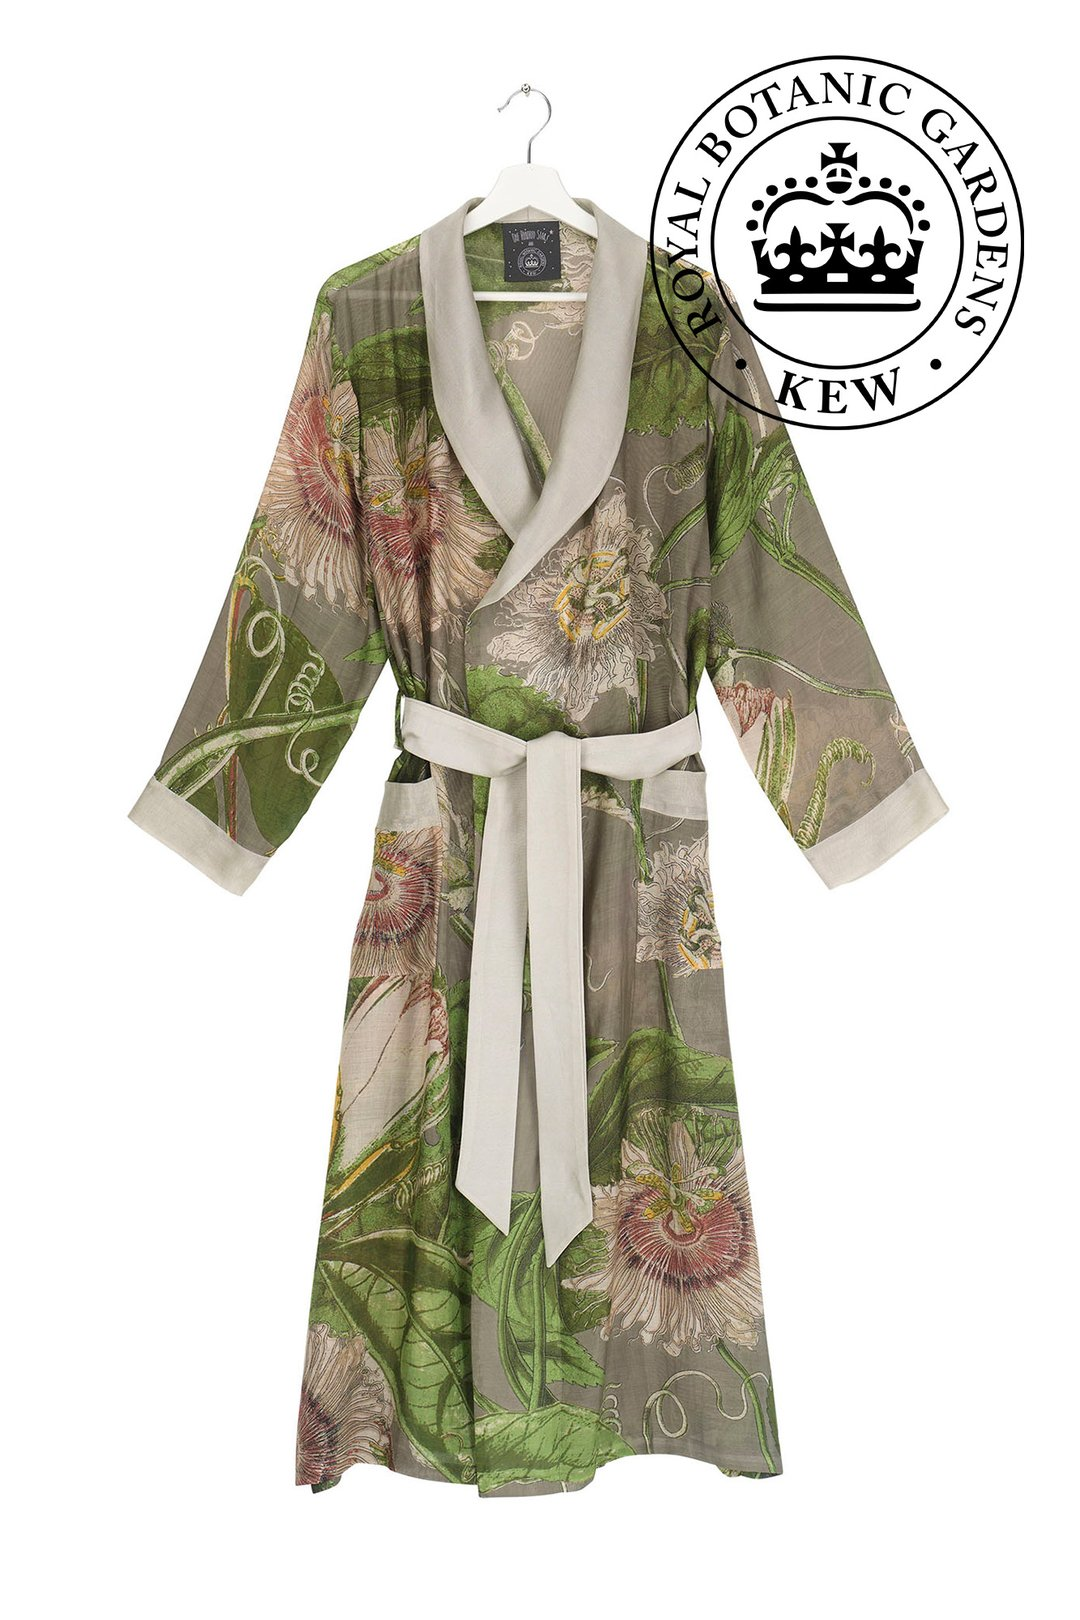 OHS X KEW RBG Passion Flower Stone Gown